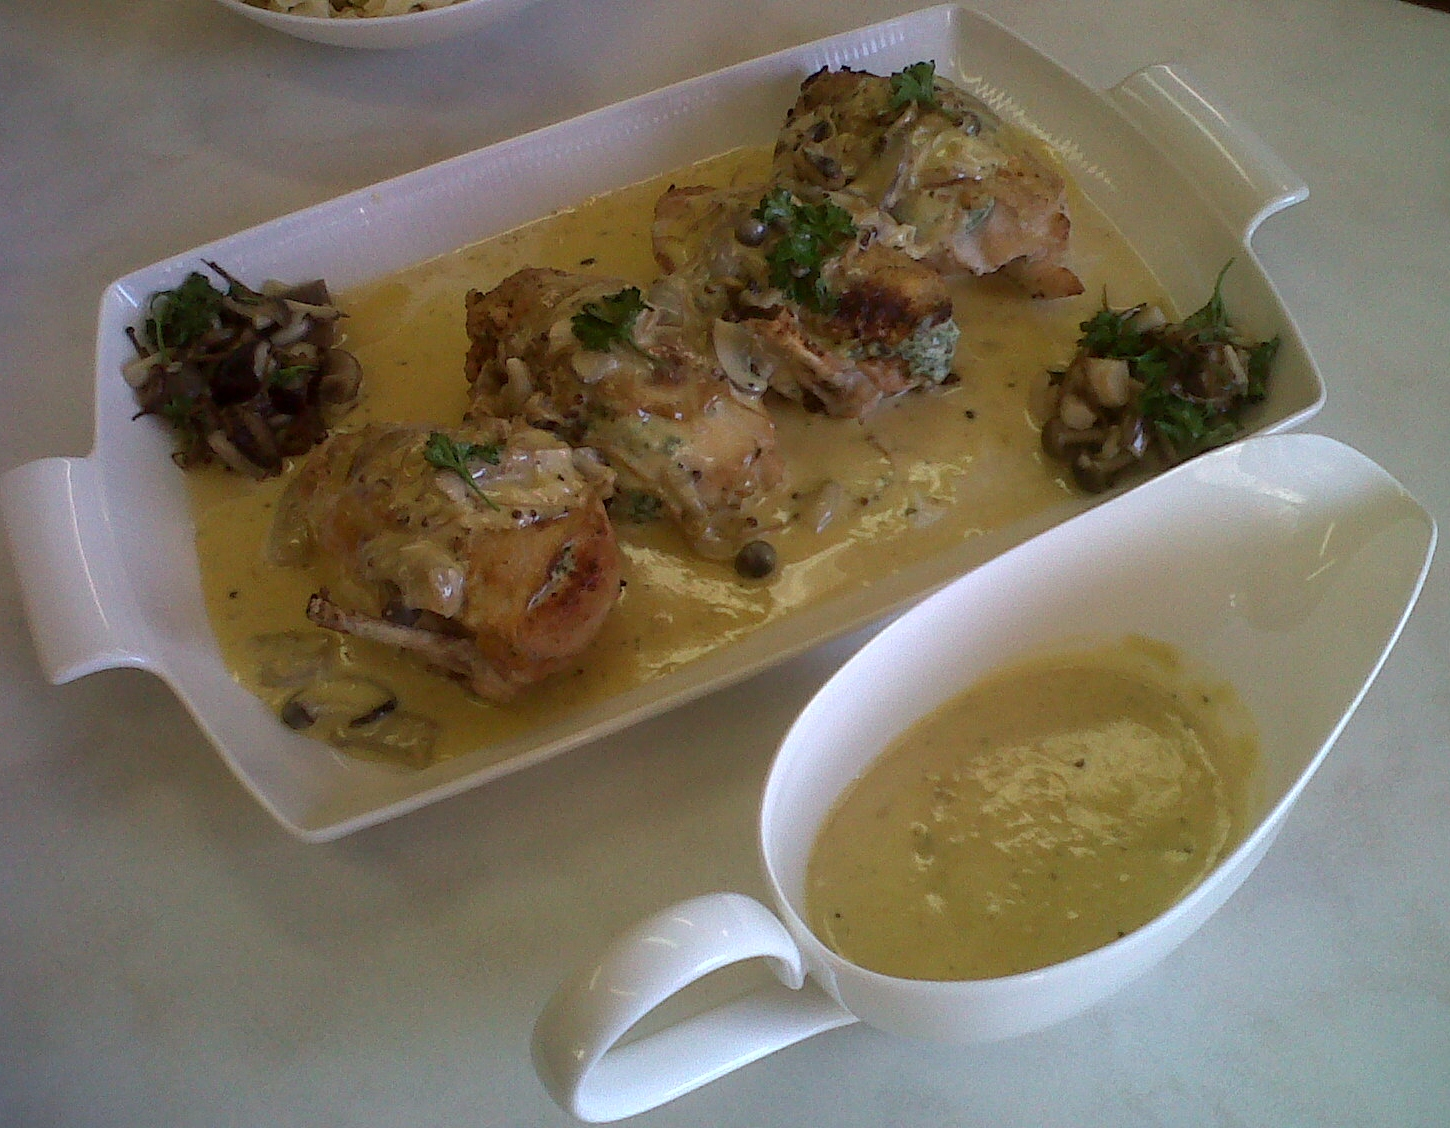 ... Stuffed with Herbed Cheese & Wild Mushrooms and Creamy Mushroom Sauce